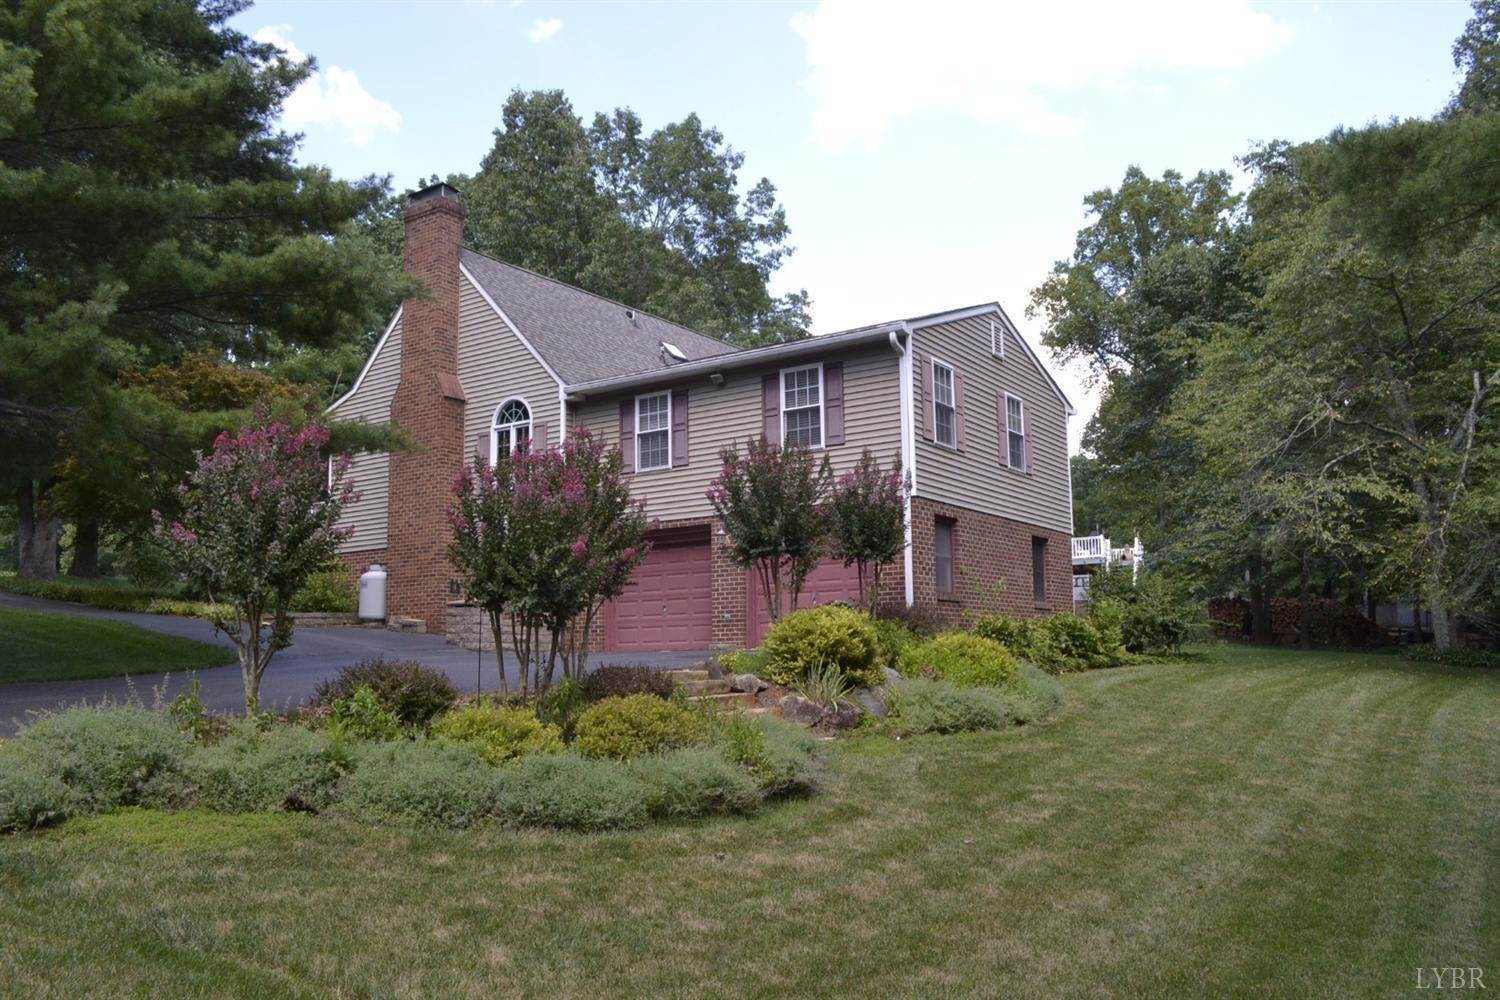 1246 Walnut Hollow Road, Lynchburg, VA 24503